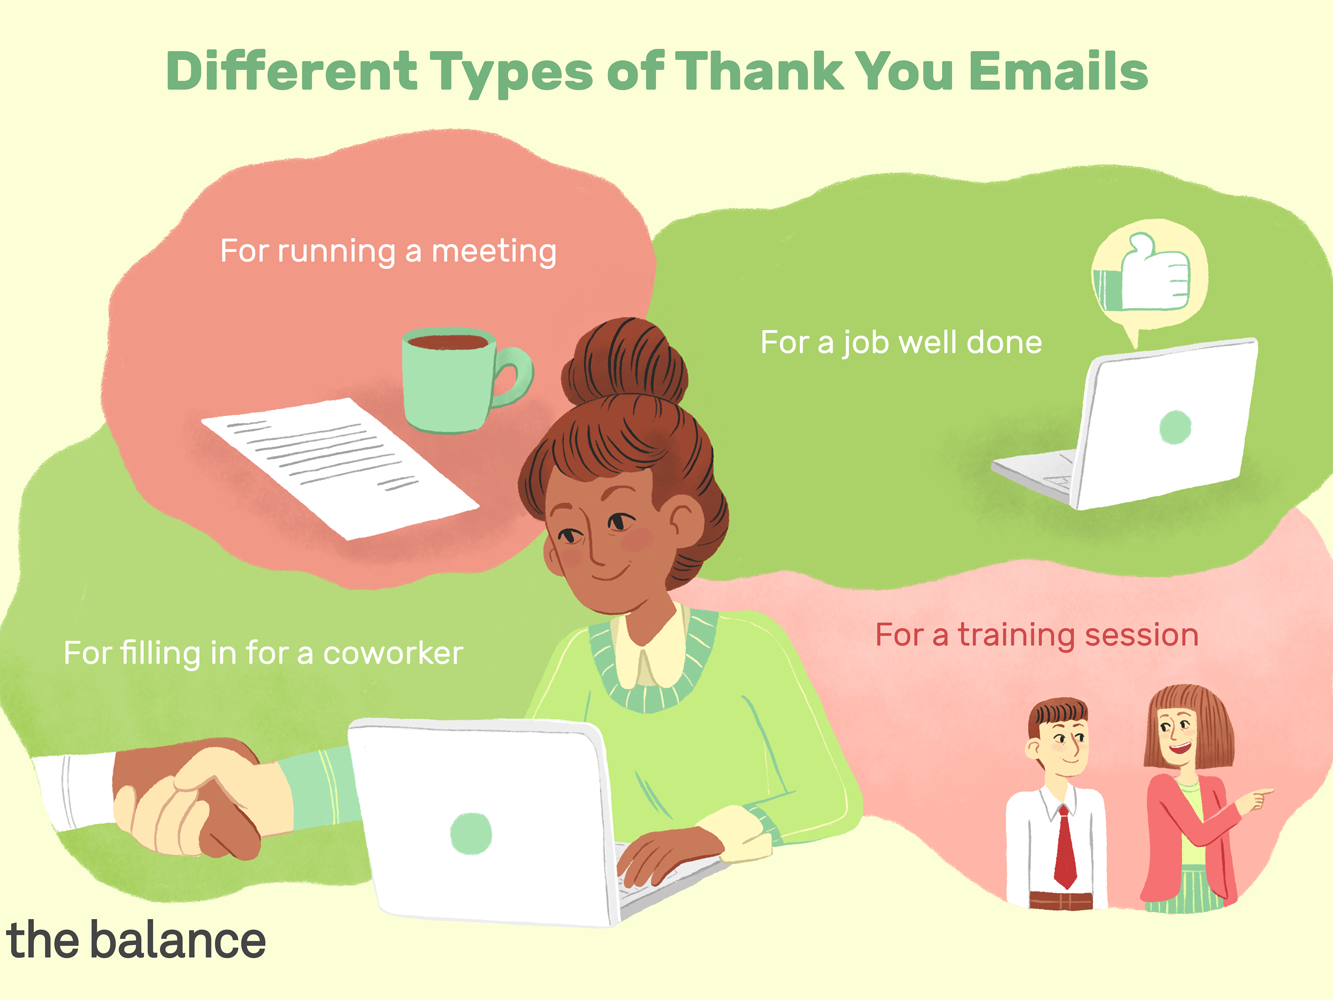 Here Are Quick Sample Thank You Emails for Your Coworkers